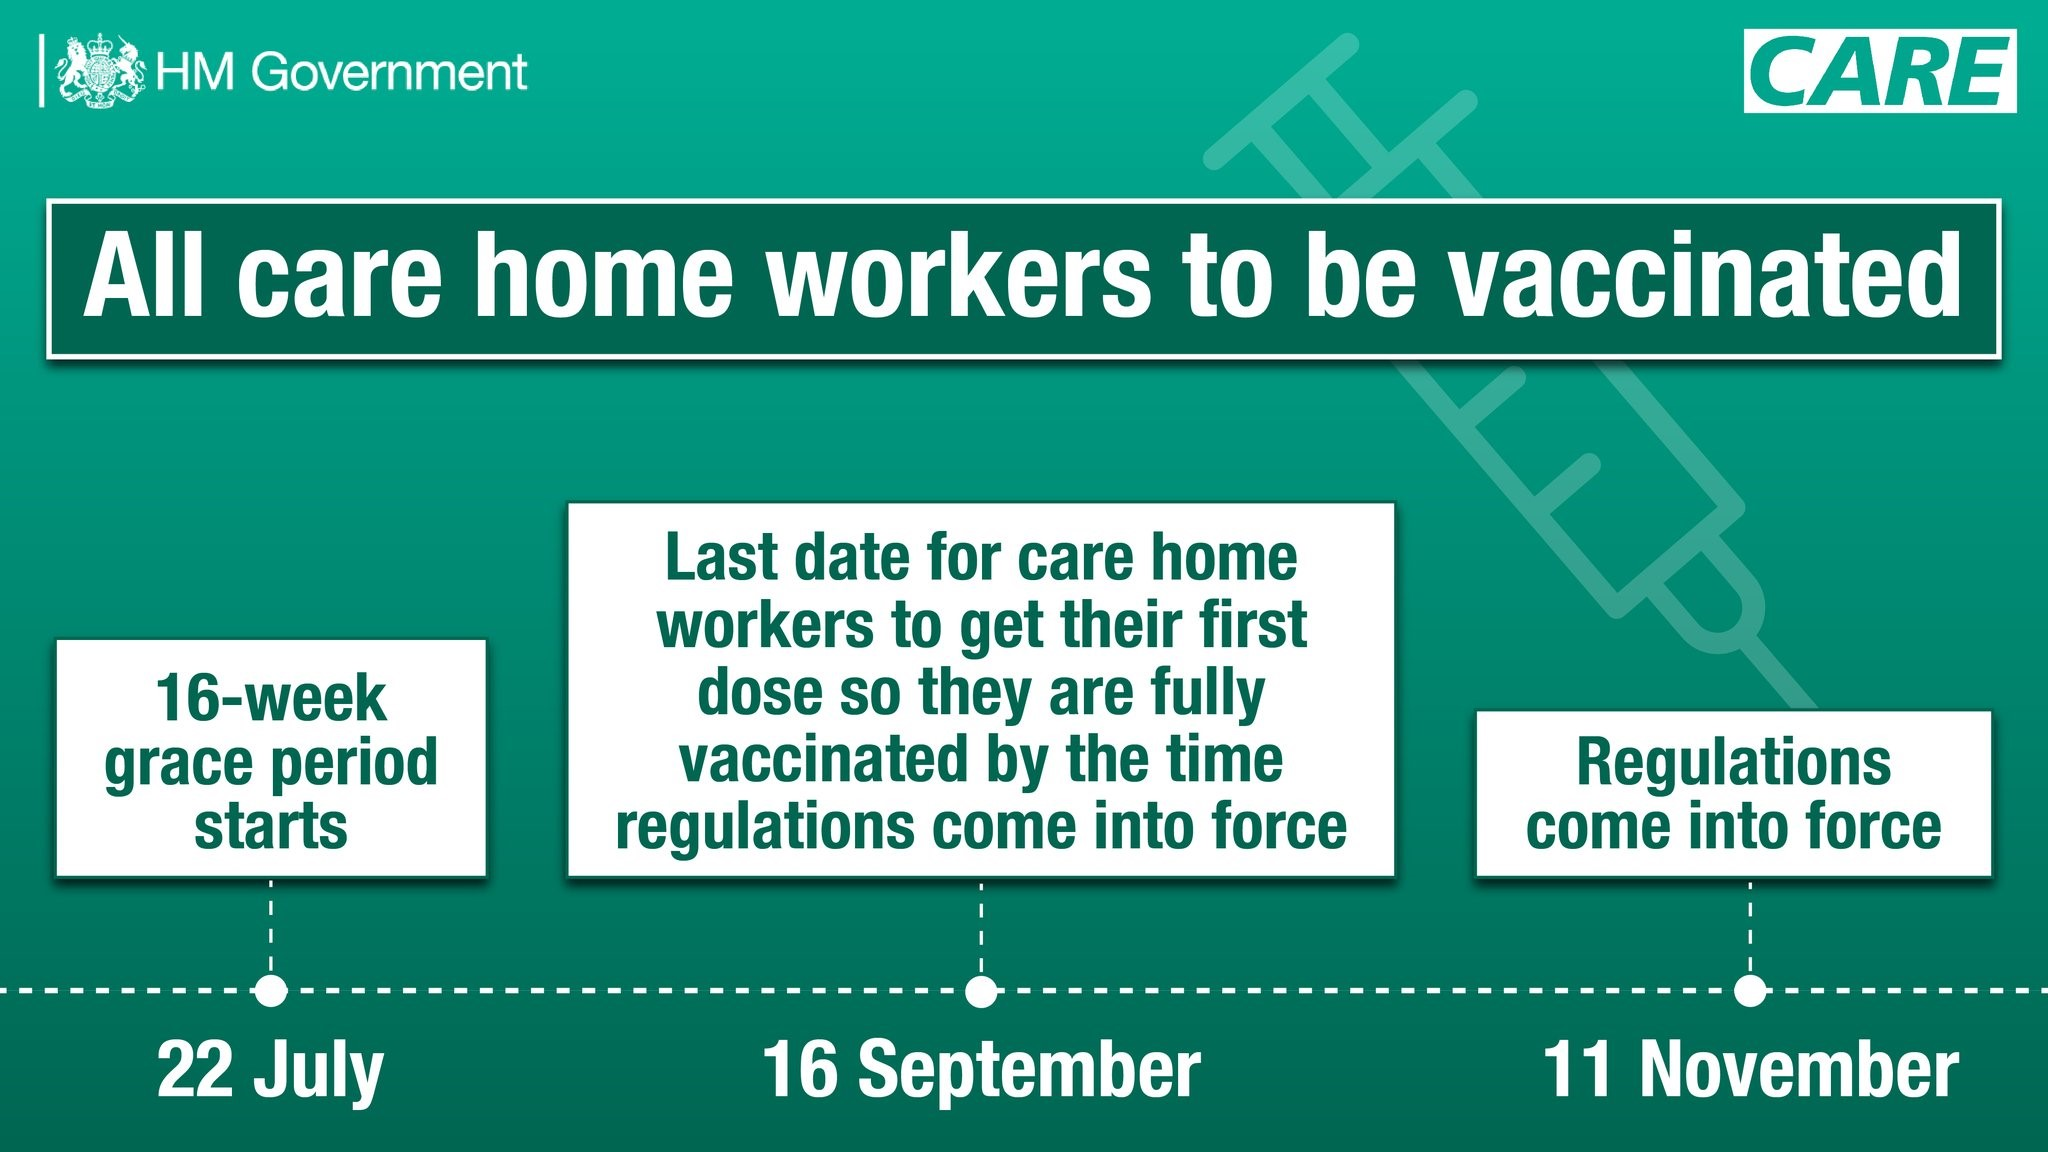 Care Worker Vaccination timeline 16 week grace period started on the 22nd July. This means that the 16th September is the last date care home workers can get their first COVID-19 vaccination dose in order to be fully vaccinated by the time the regulations come into force on 11th November.